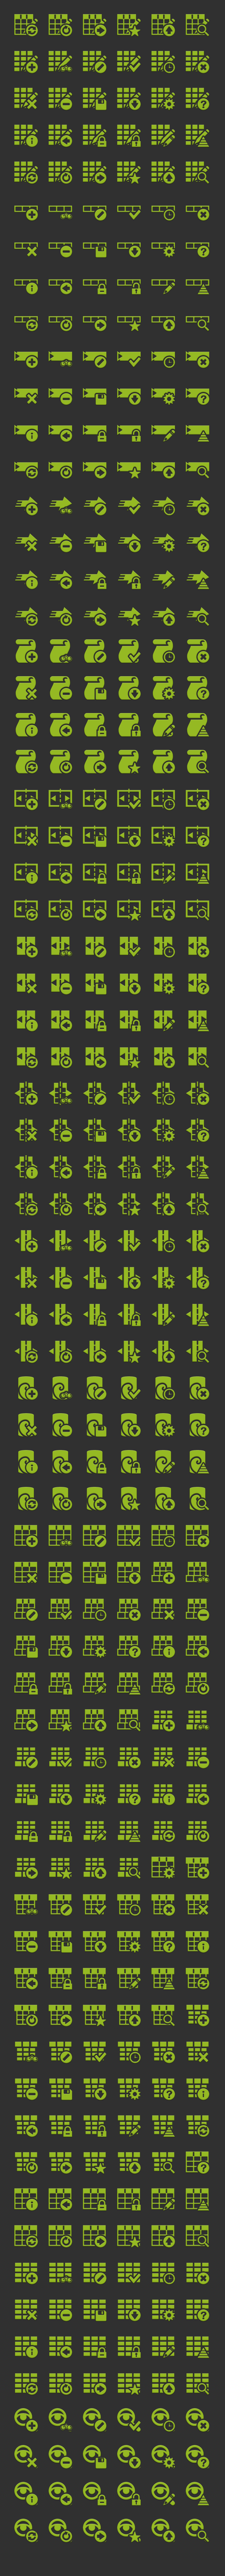 android icons database addons